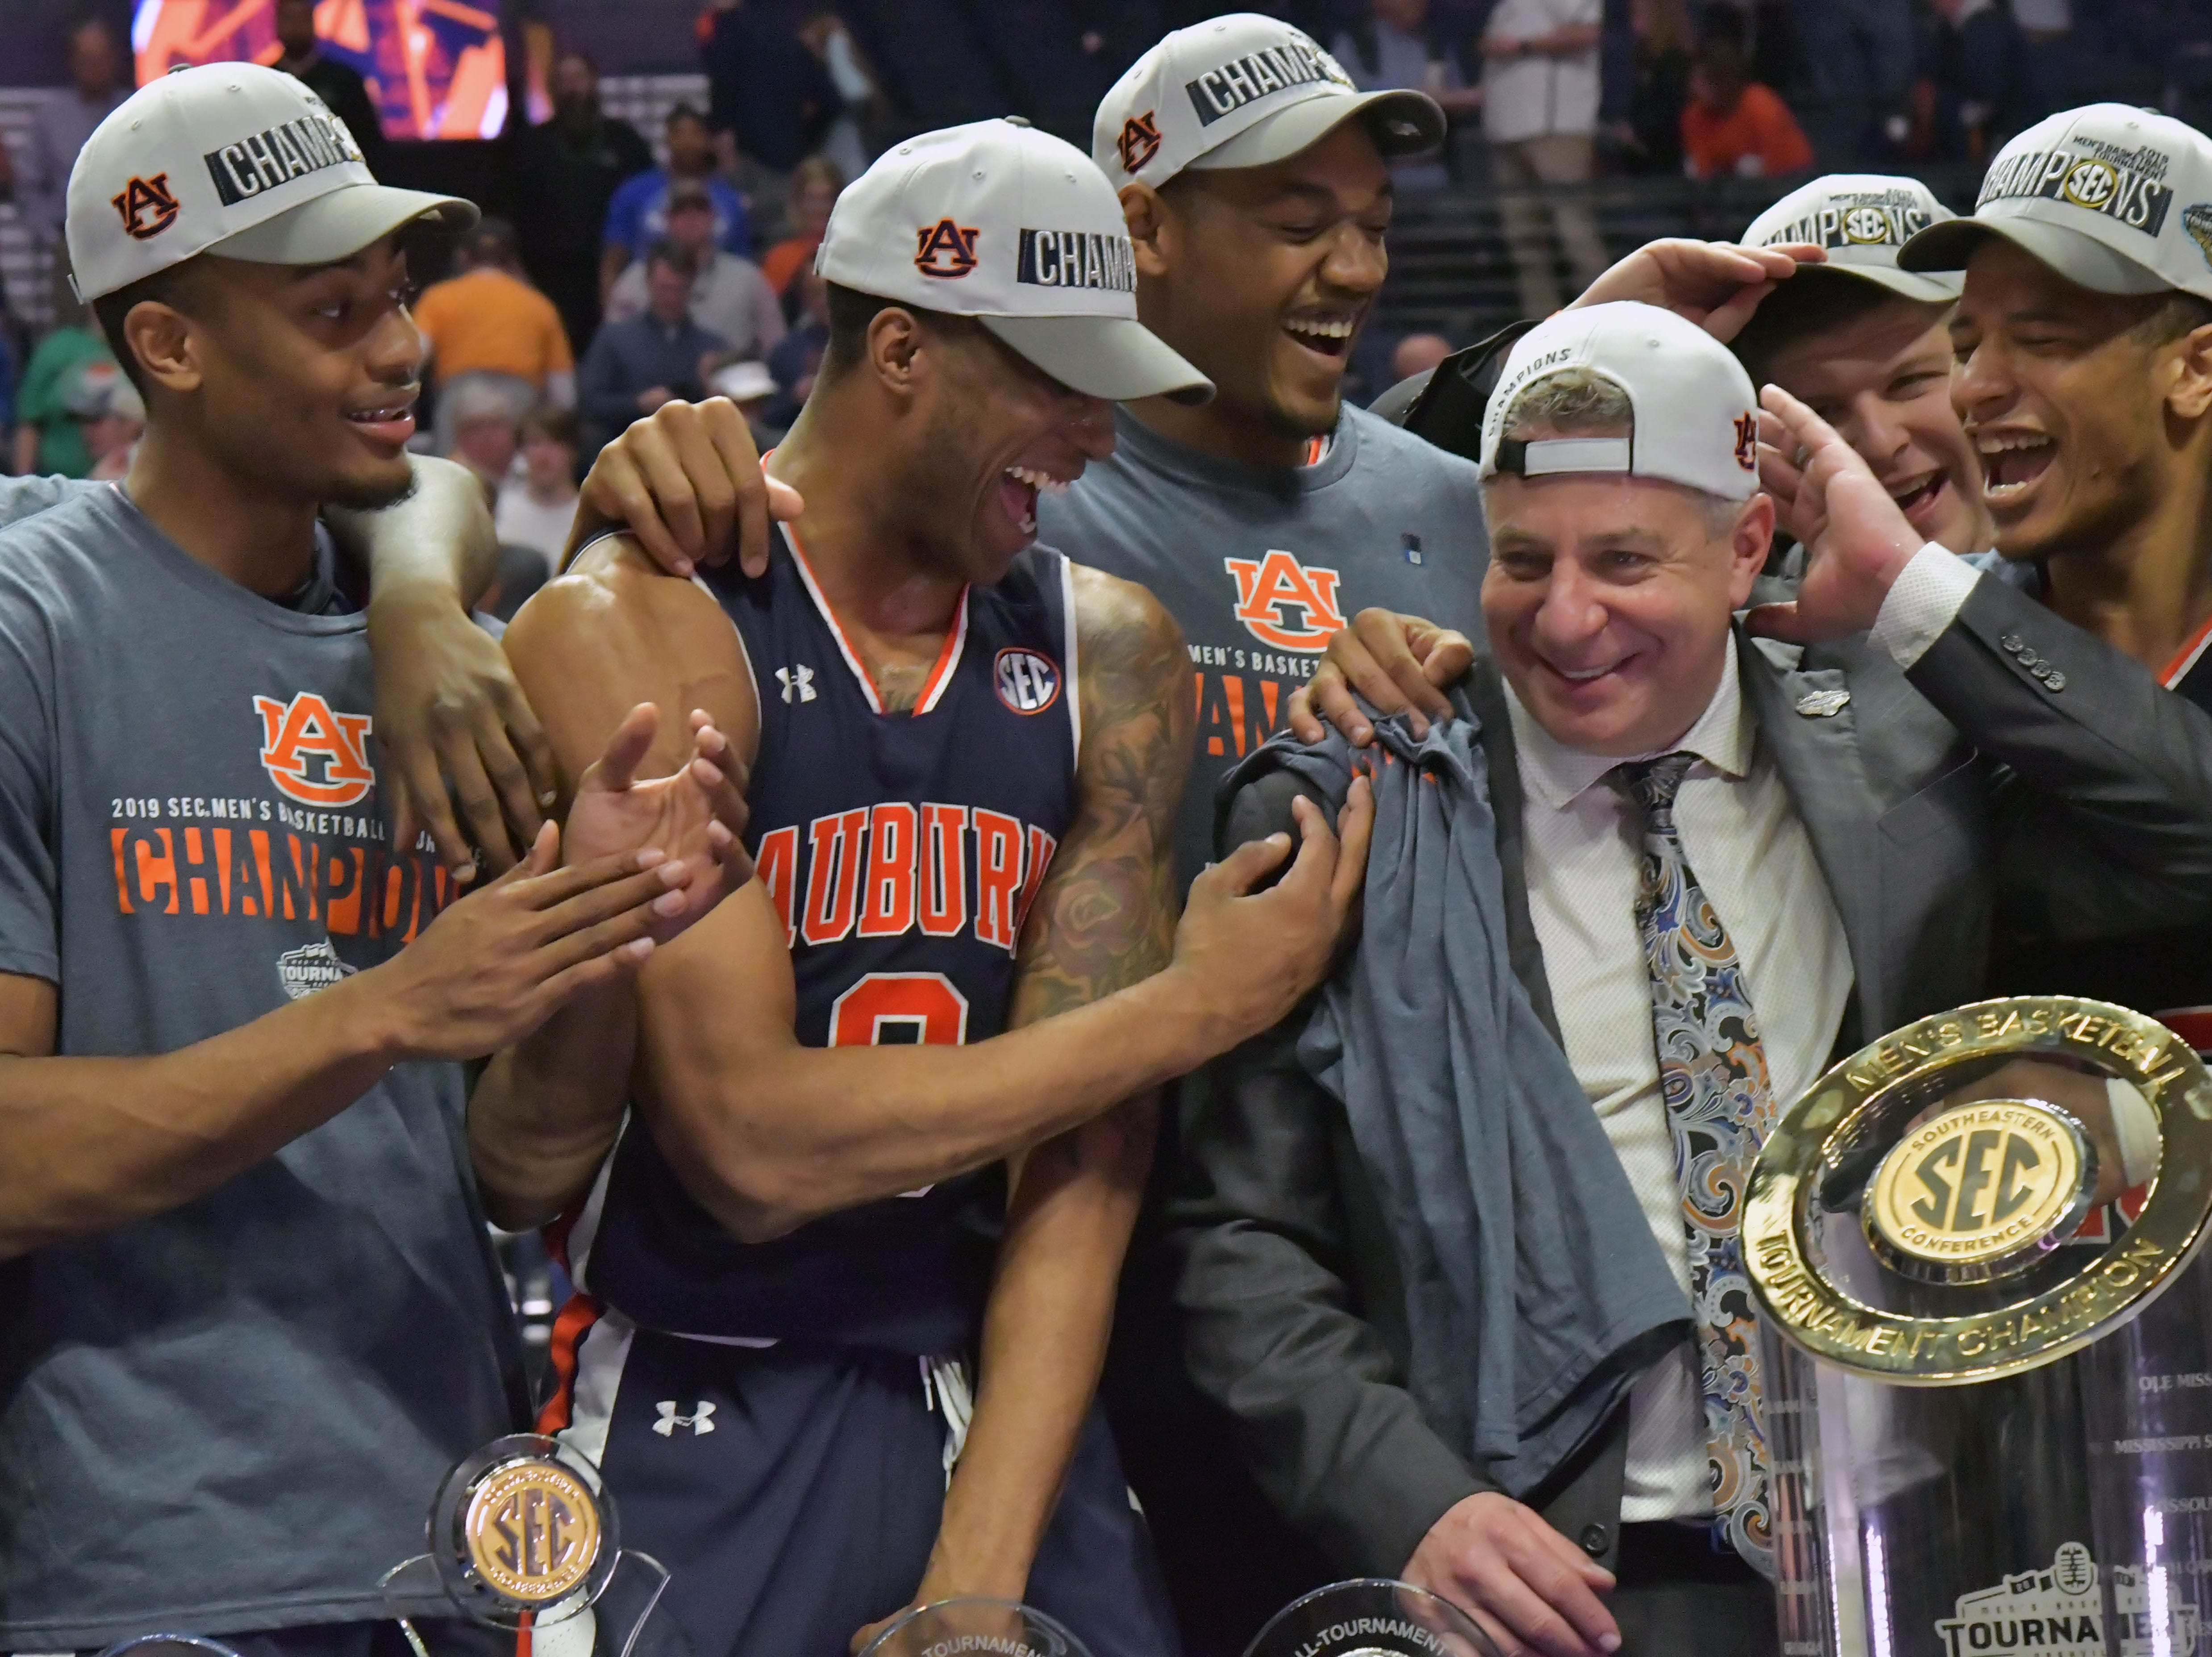 Auburn (26-9), No. 5 seed in Midwest, Southeastern Conference champion